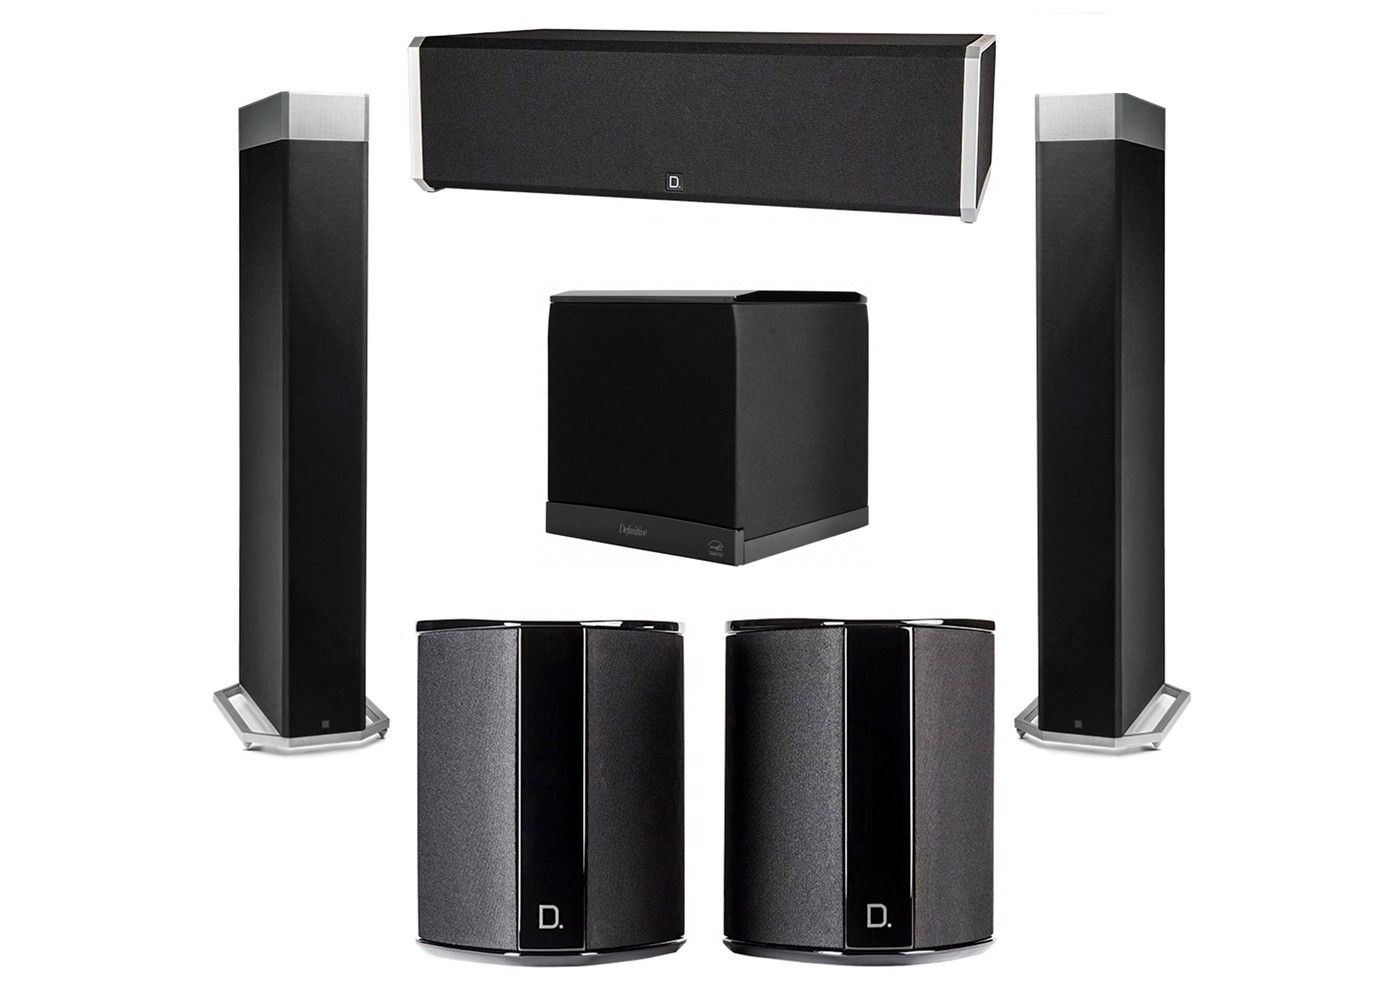 definitive technology 5.1 system with 2 bp9080x tower speakers, 1